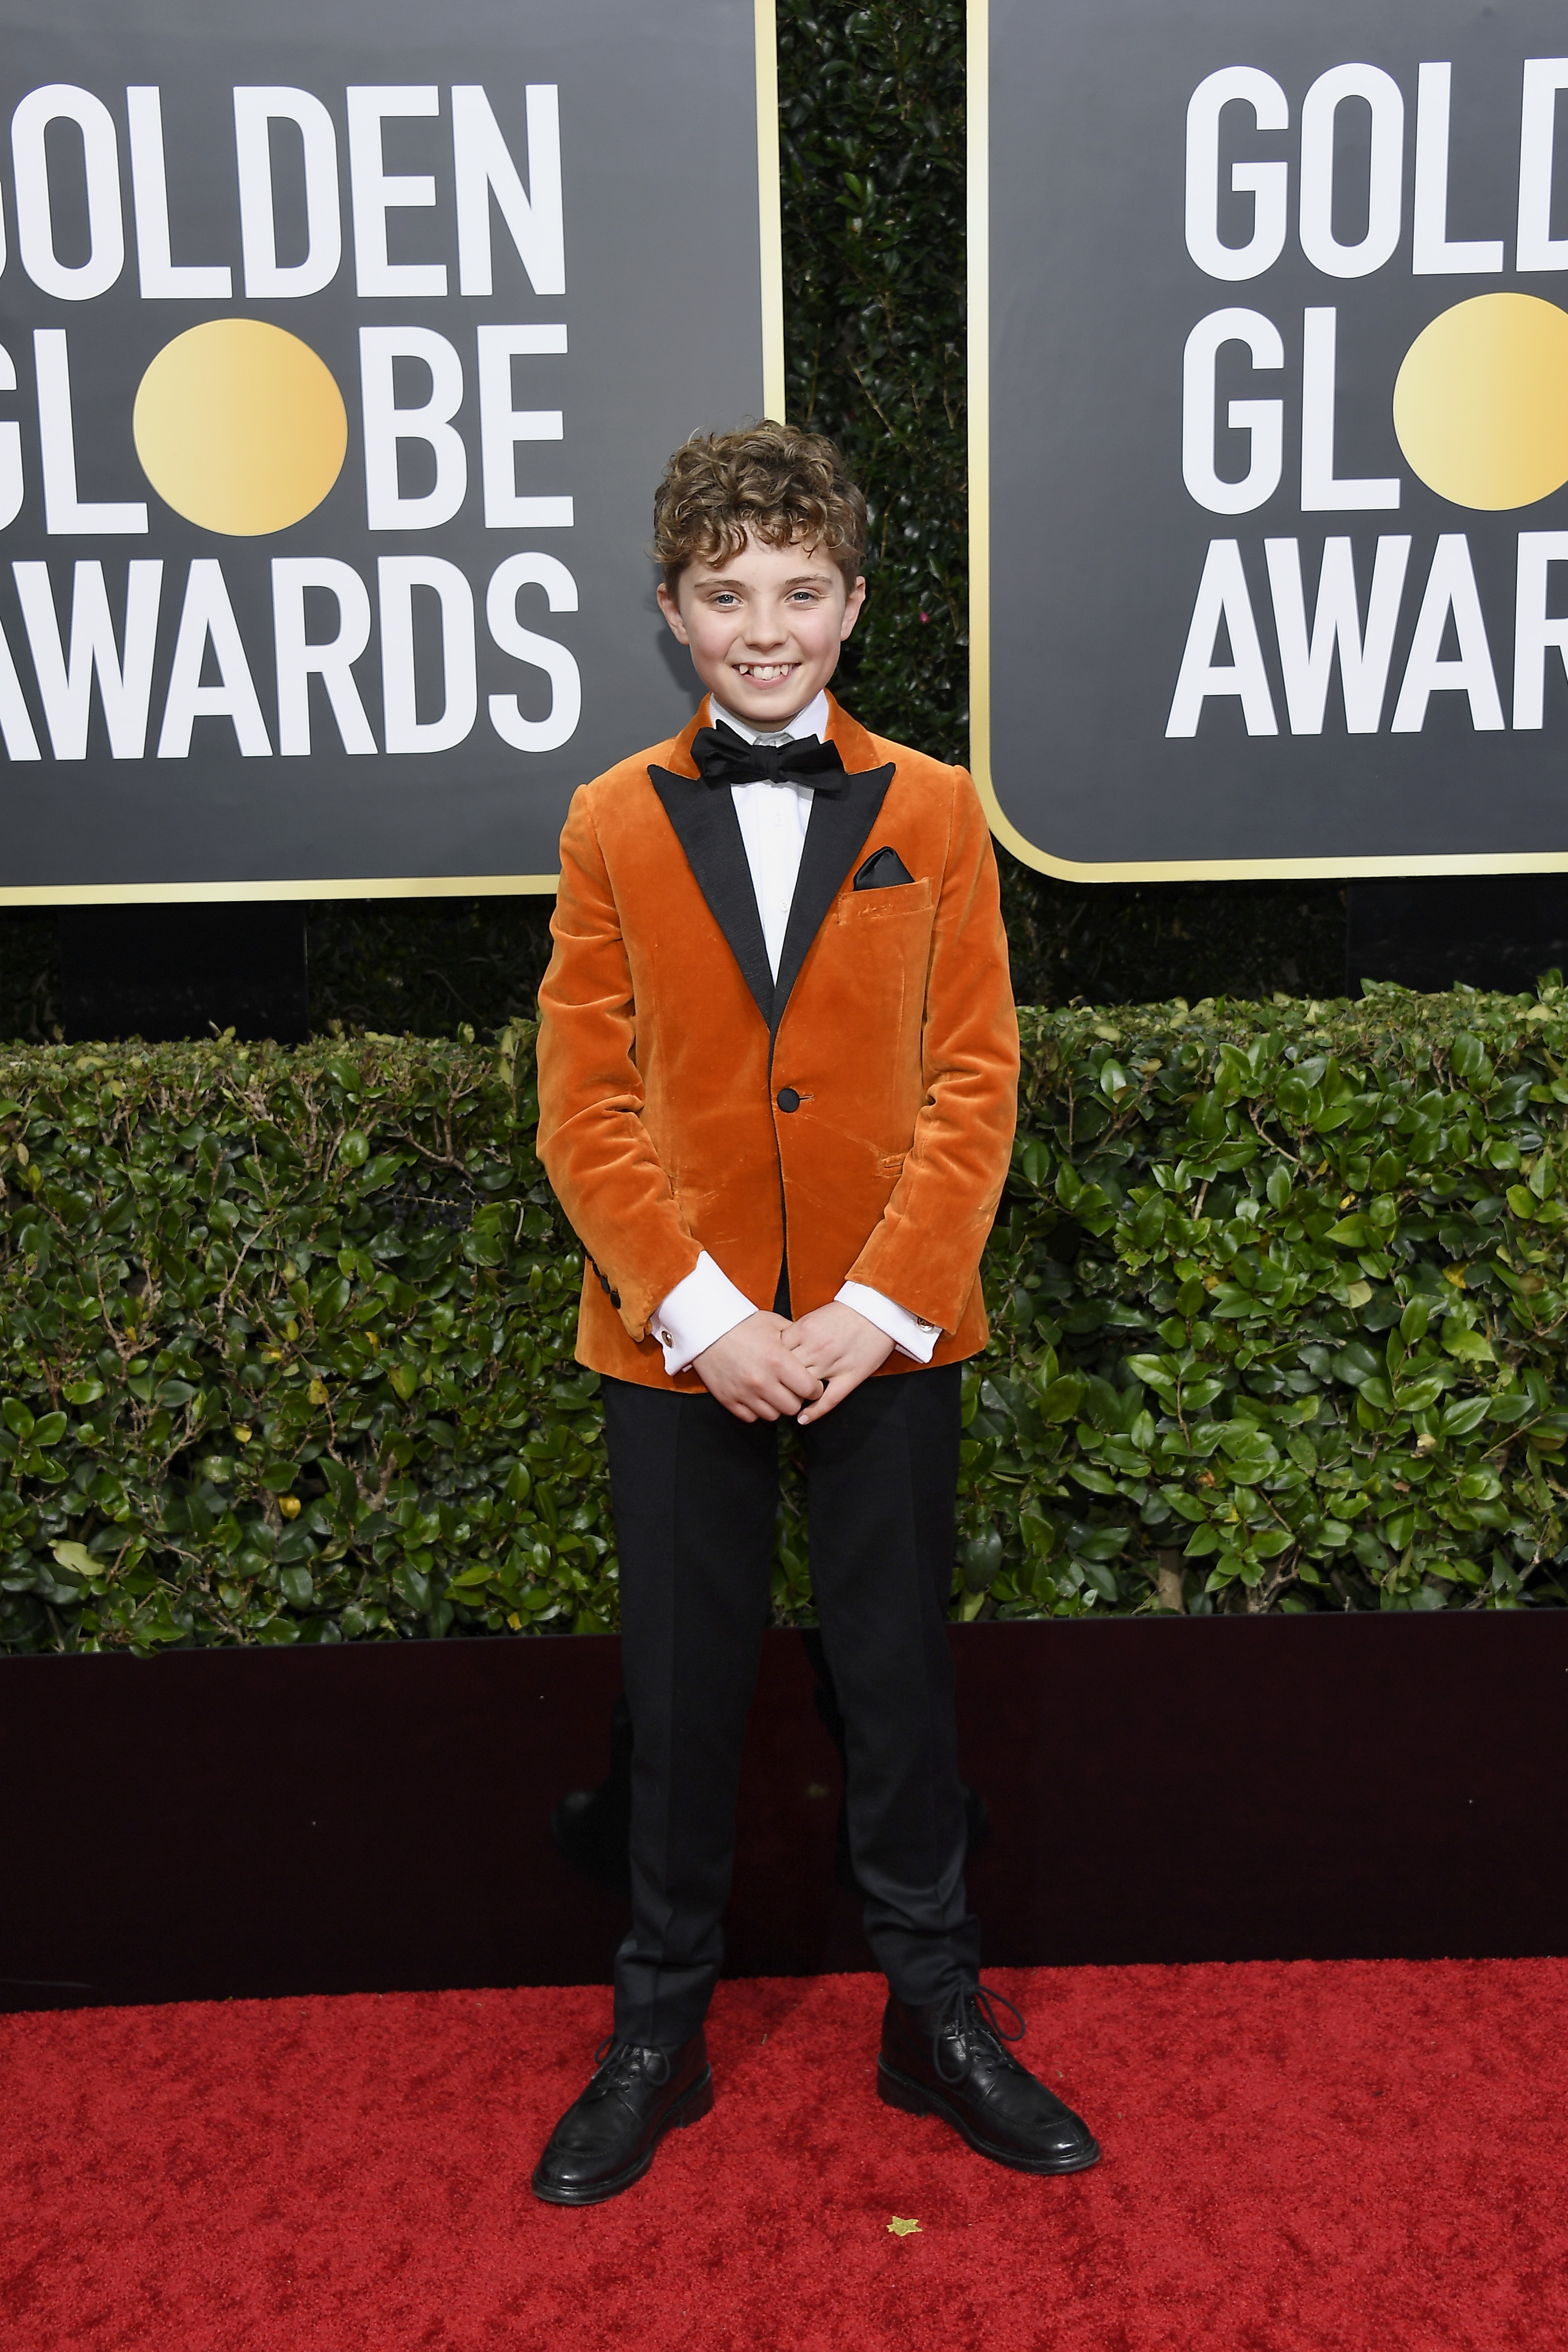 BEVERLY HILLS, CALIFORNIA - JANUARY 05: 77th ANNUAL GOLDEN GLOBE AWARDS -- Pictured: Roman Griffin Davis arrives to the 77th Annual Golden Globe Awards held at the Beverly Hilton Hotel on January 5, 2020. -- (Photo by: Kevork Djansezian/NBC/NBCU Photo Bank via Getty Images)